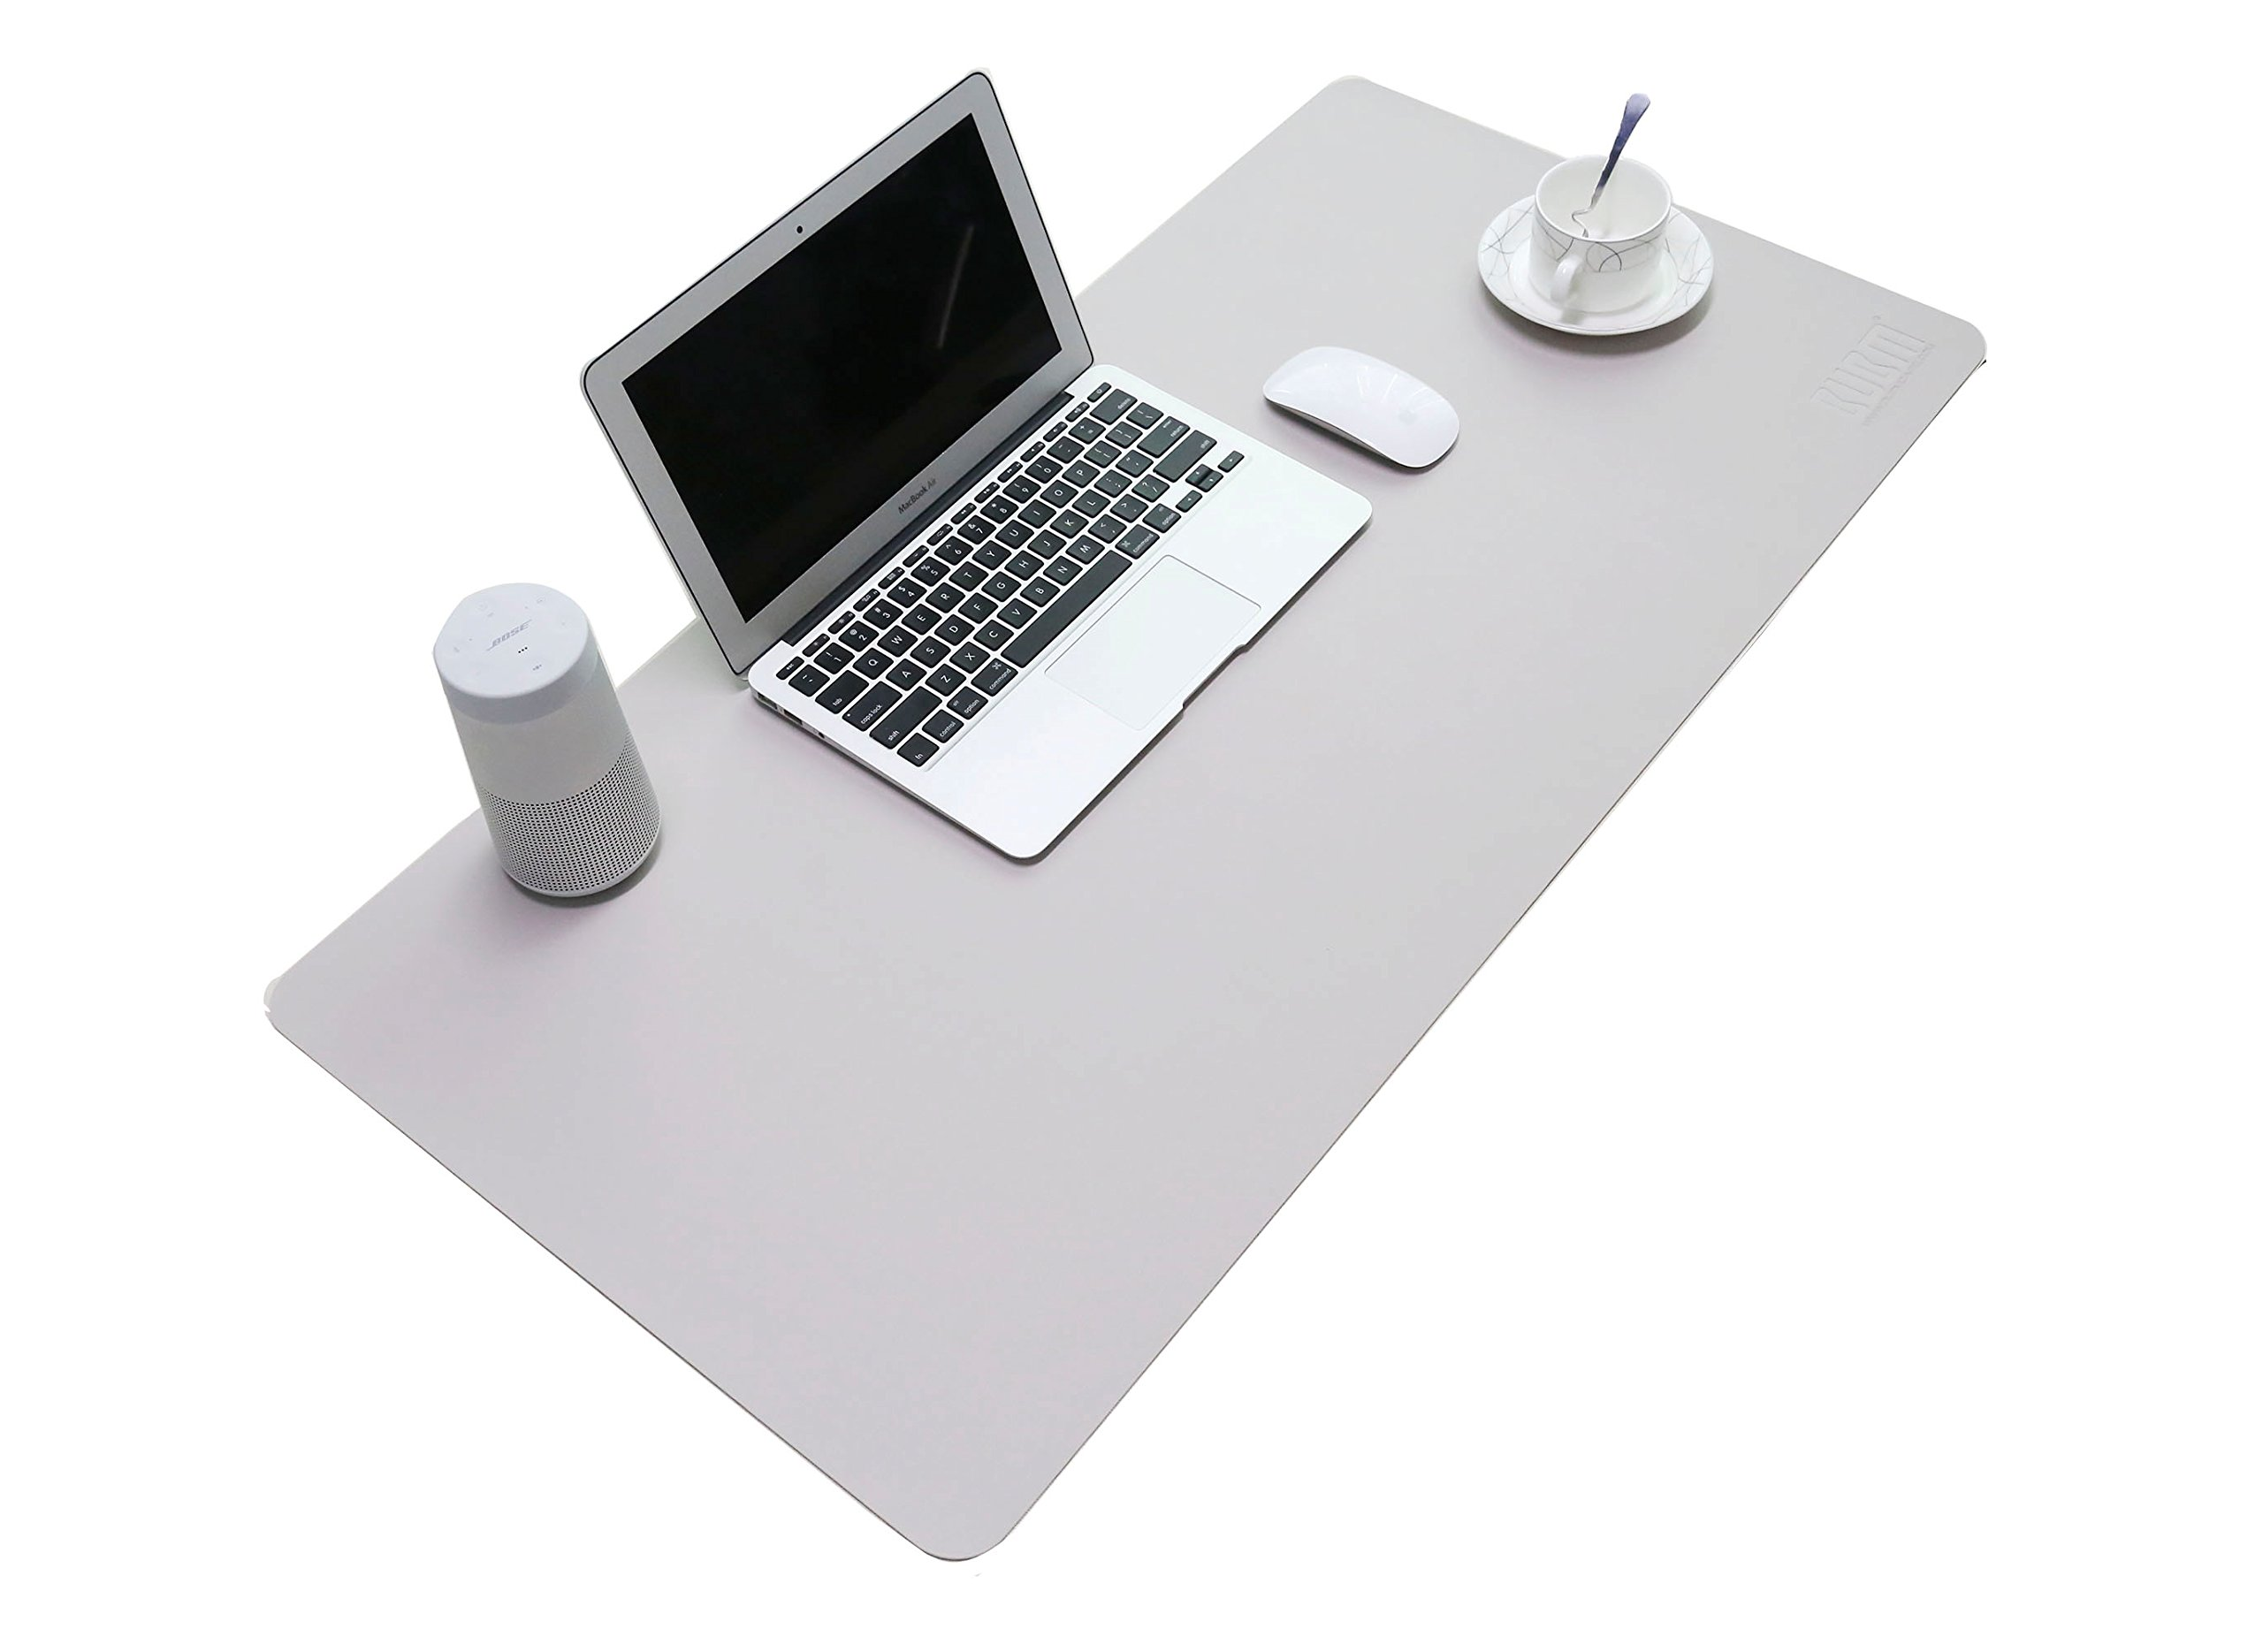 BUBM PU Leather Mouse Pad Mat Waterproof, Perfect Desk Writing Mat for Office and Home,Ultra Thin 2mm - 31.5''x15.8'' (Gray)